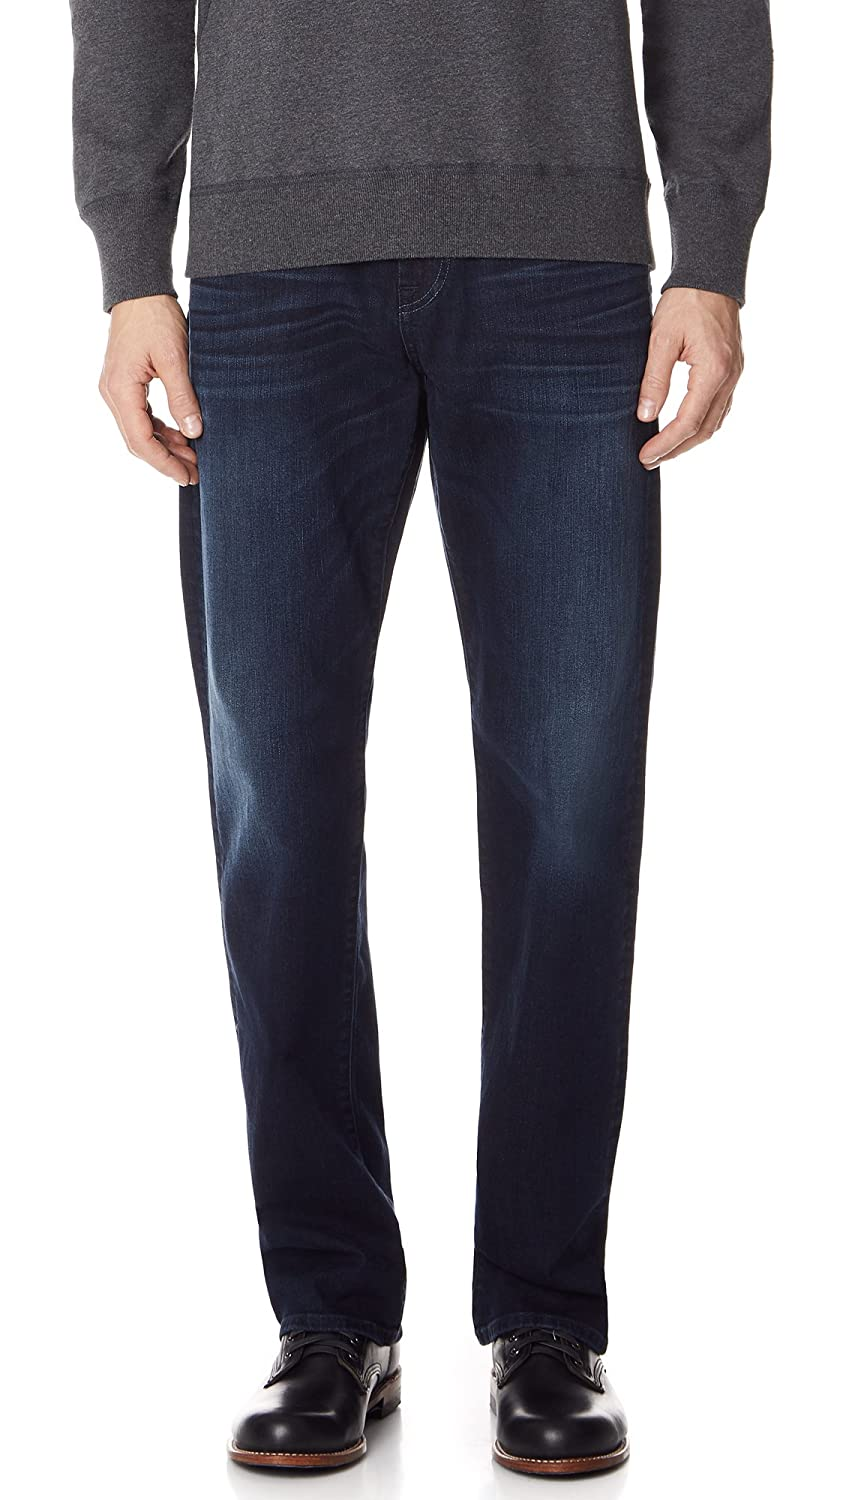 7 For All Mankind Mens Luxe Performance Carsen Easy Straight Leg Jeans